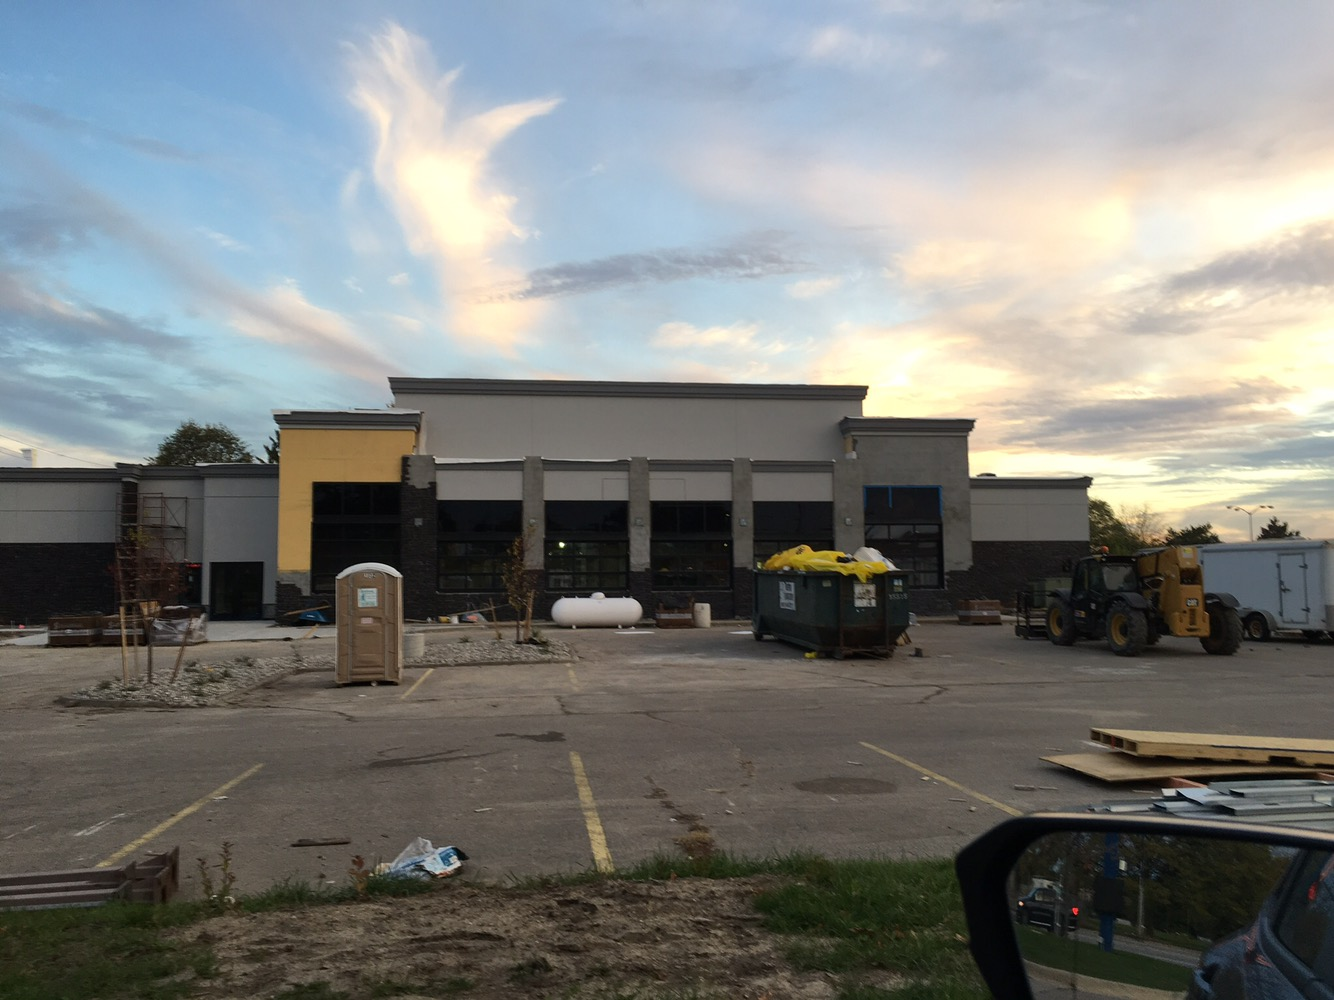 State Street & Oak Valley latest – A2 Retail